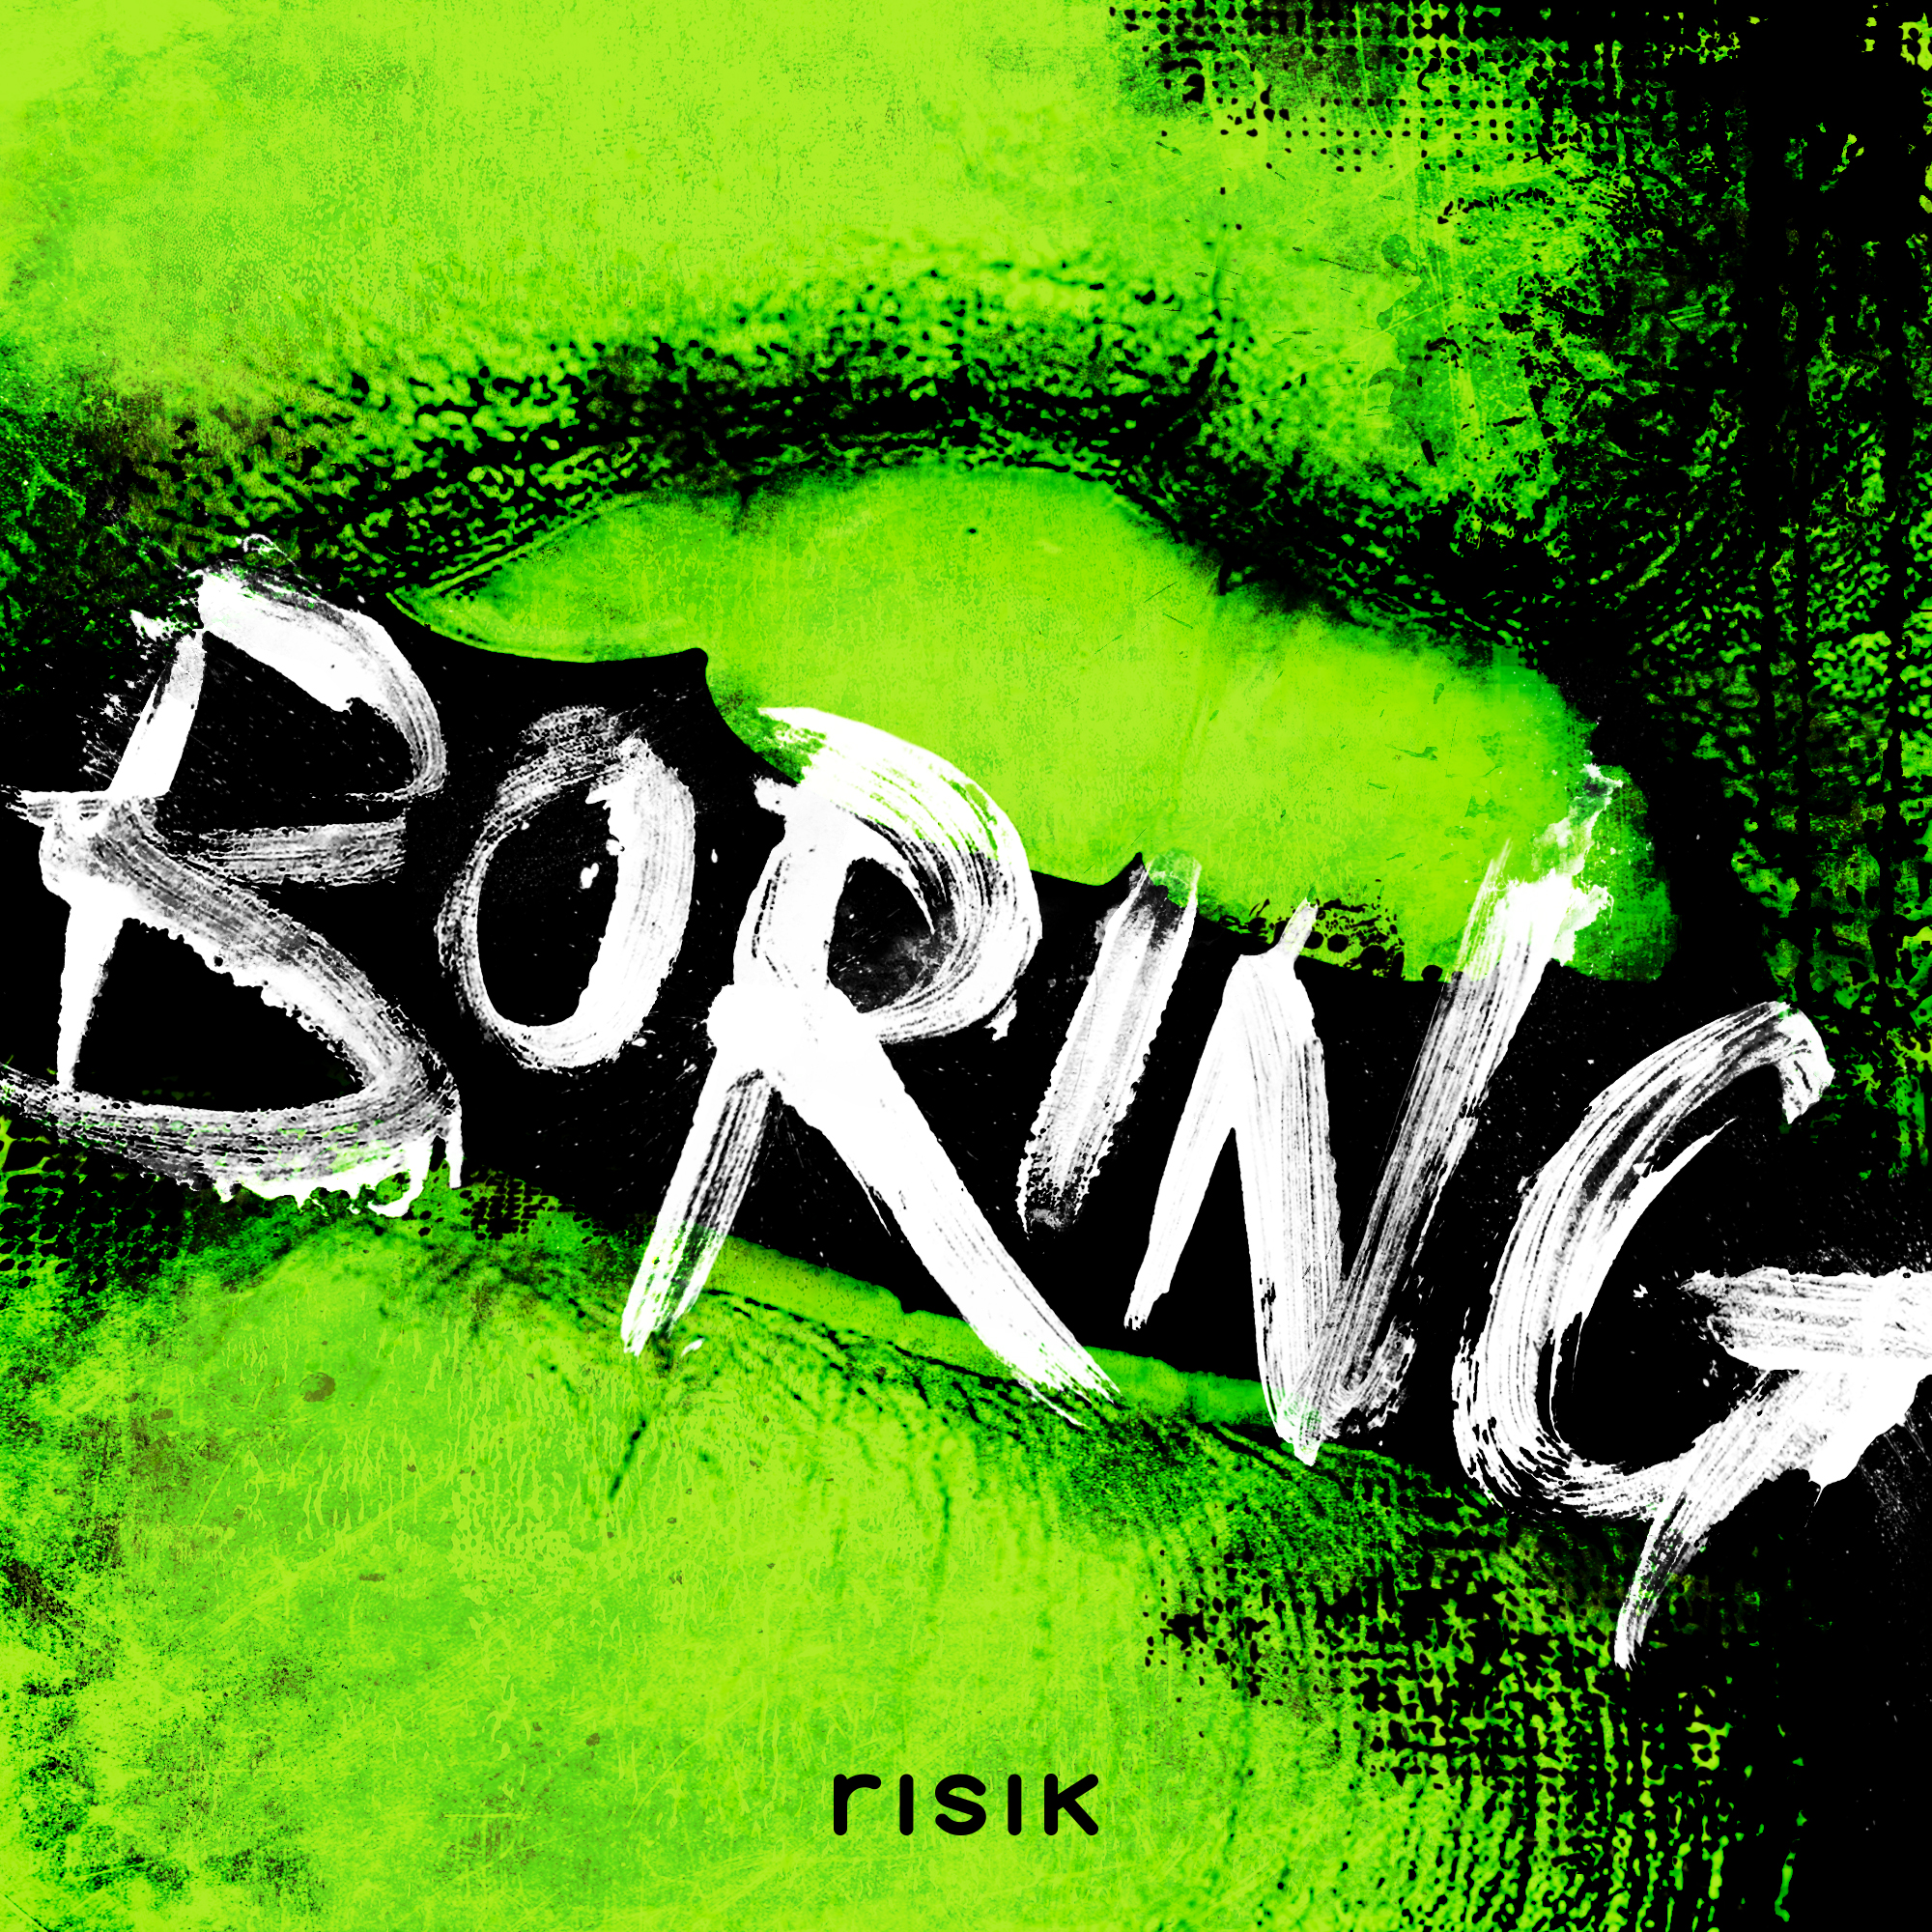 "RISIK STUNS WITH DEBUT SINGLE ""BORING"" WHICH IS ANYTHING BUT [MUST LISTEN] - Risik has made her presence known with an enticing, bass friendly track you need to hear right now. ""BORING"" is quite ironic, because it's anything but. The track is riddled with imagination and intricacies that we can only describe as Risik. Welcome to her world."